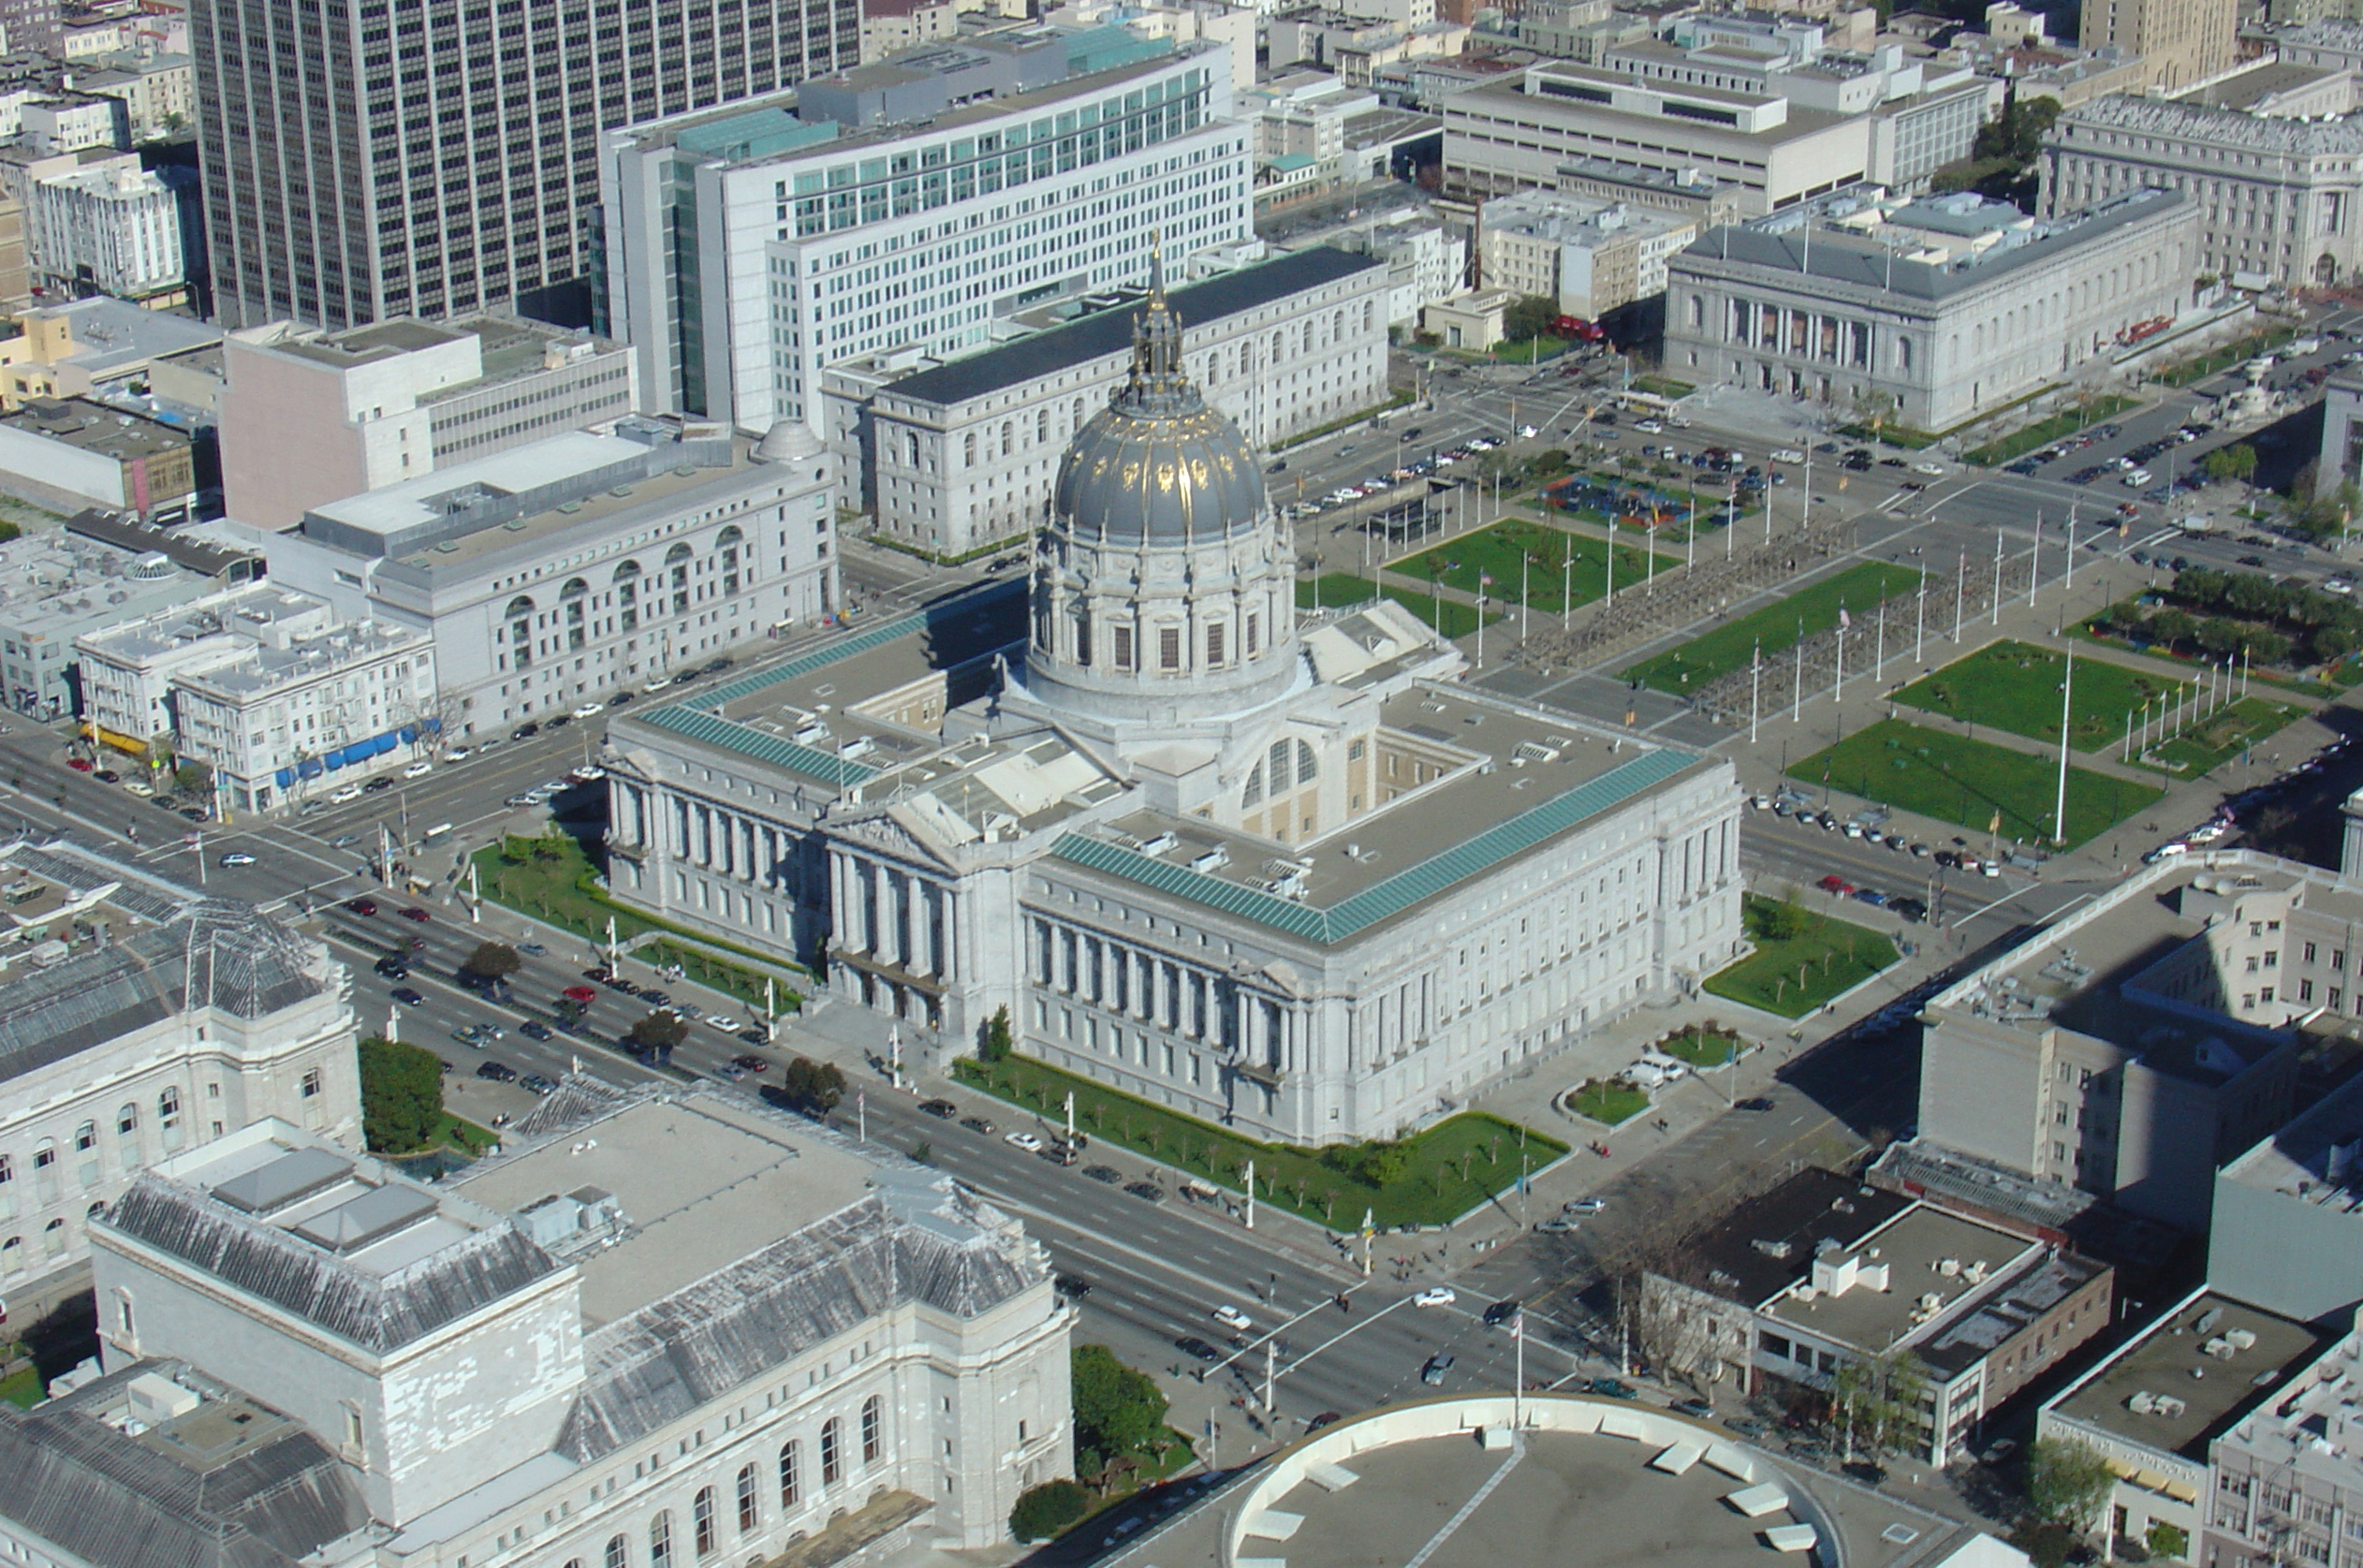 Aerial view of the San Francisco Bey city hall